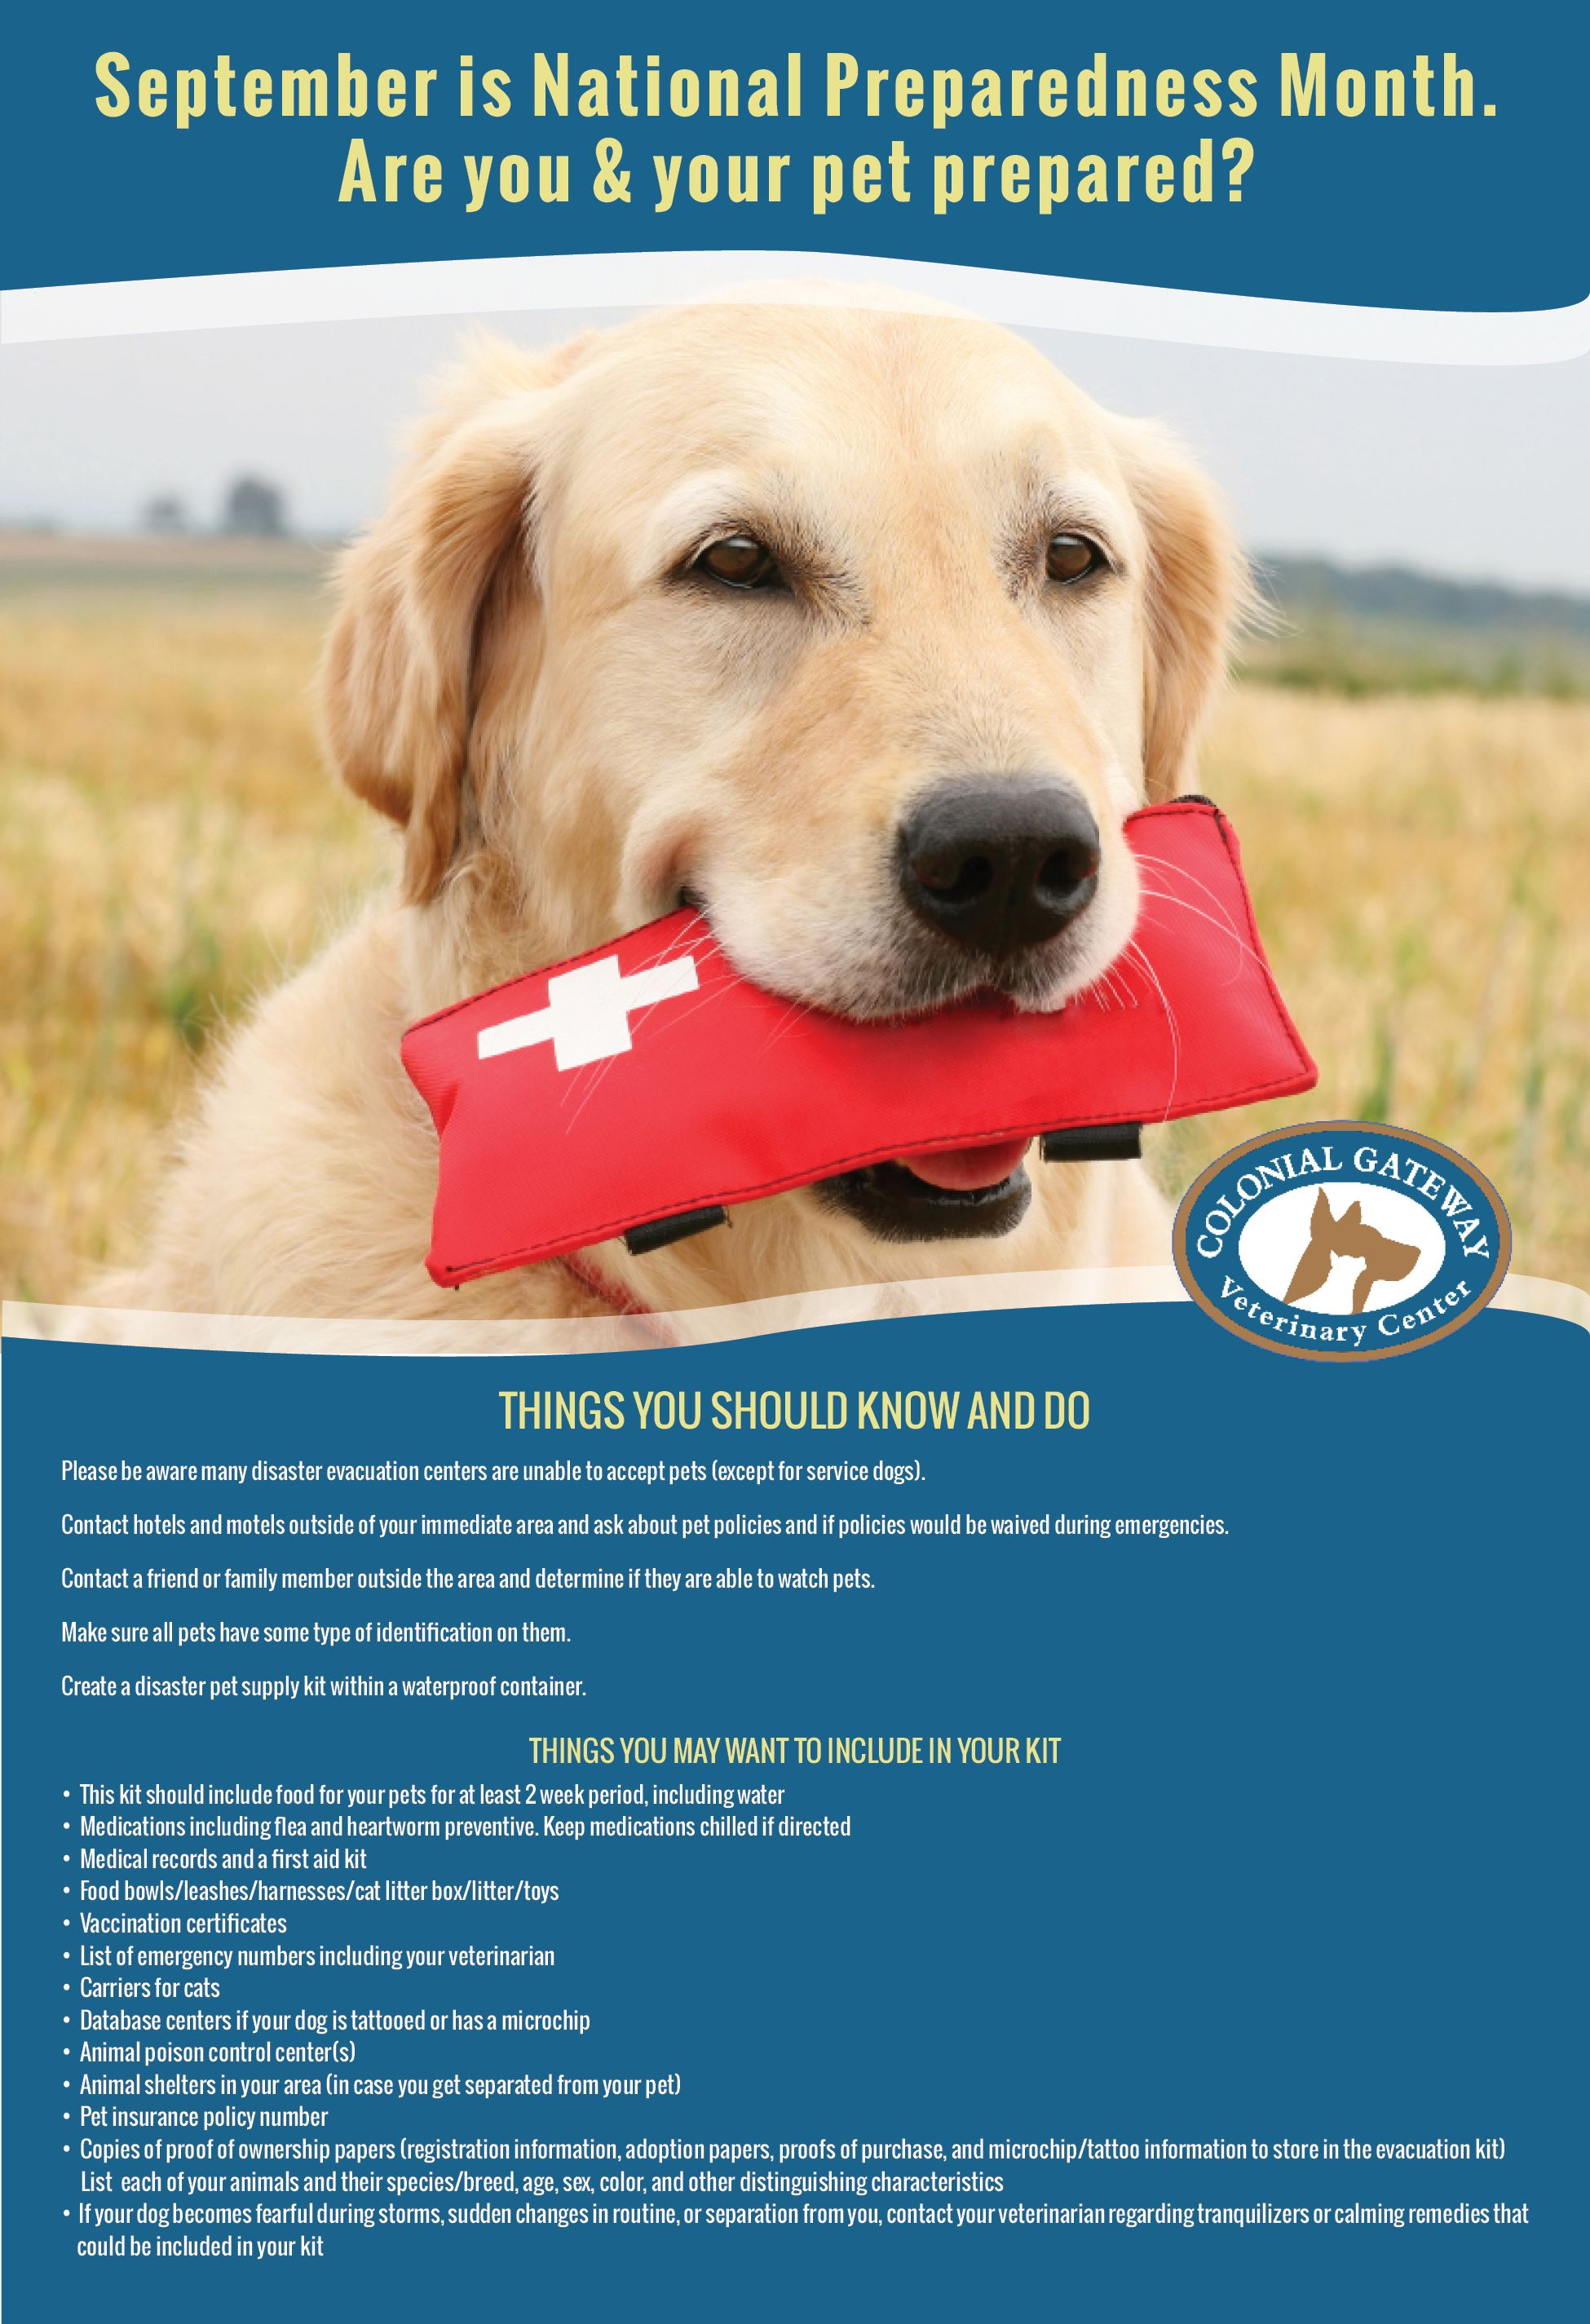 September Preparedness Month Colonialgatewayveterinarycenter Vets Petcare Pets Dogs Pawprintseo W National Preparedness Month Service Dogs Pet Boarding